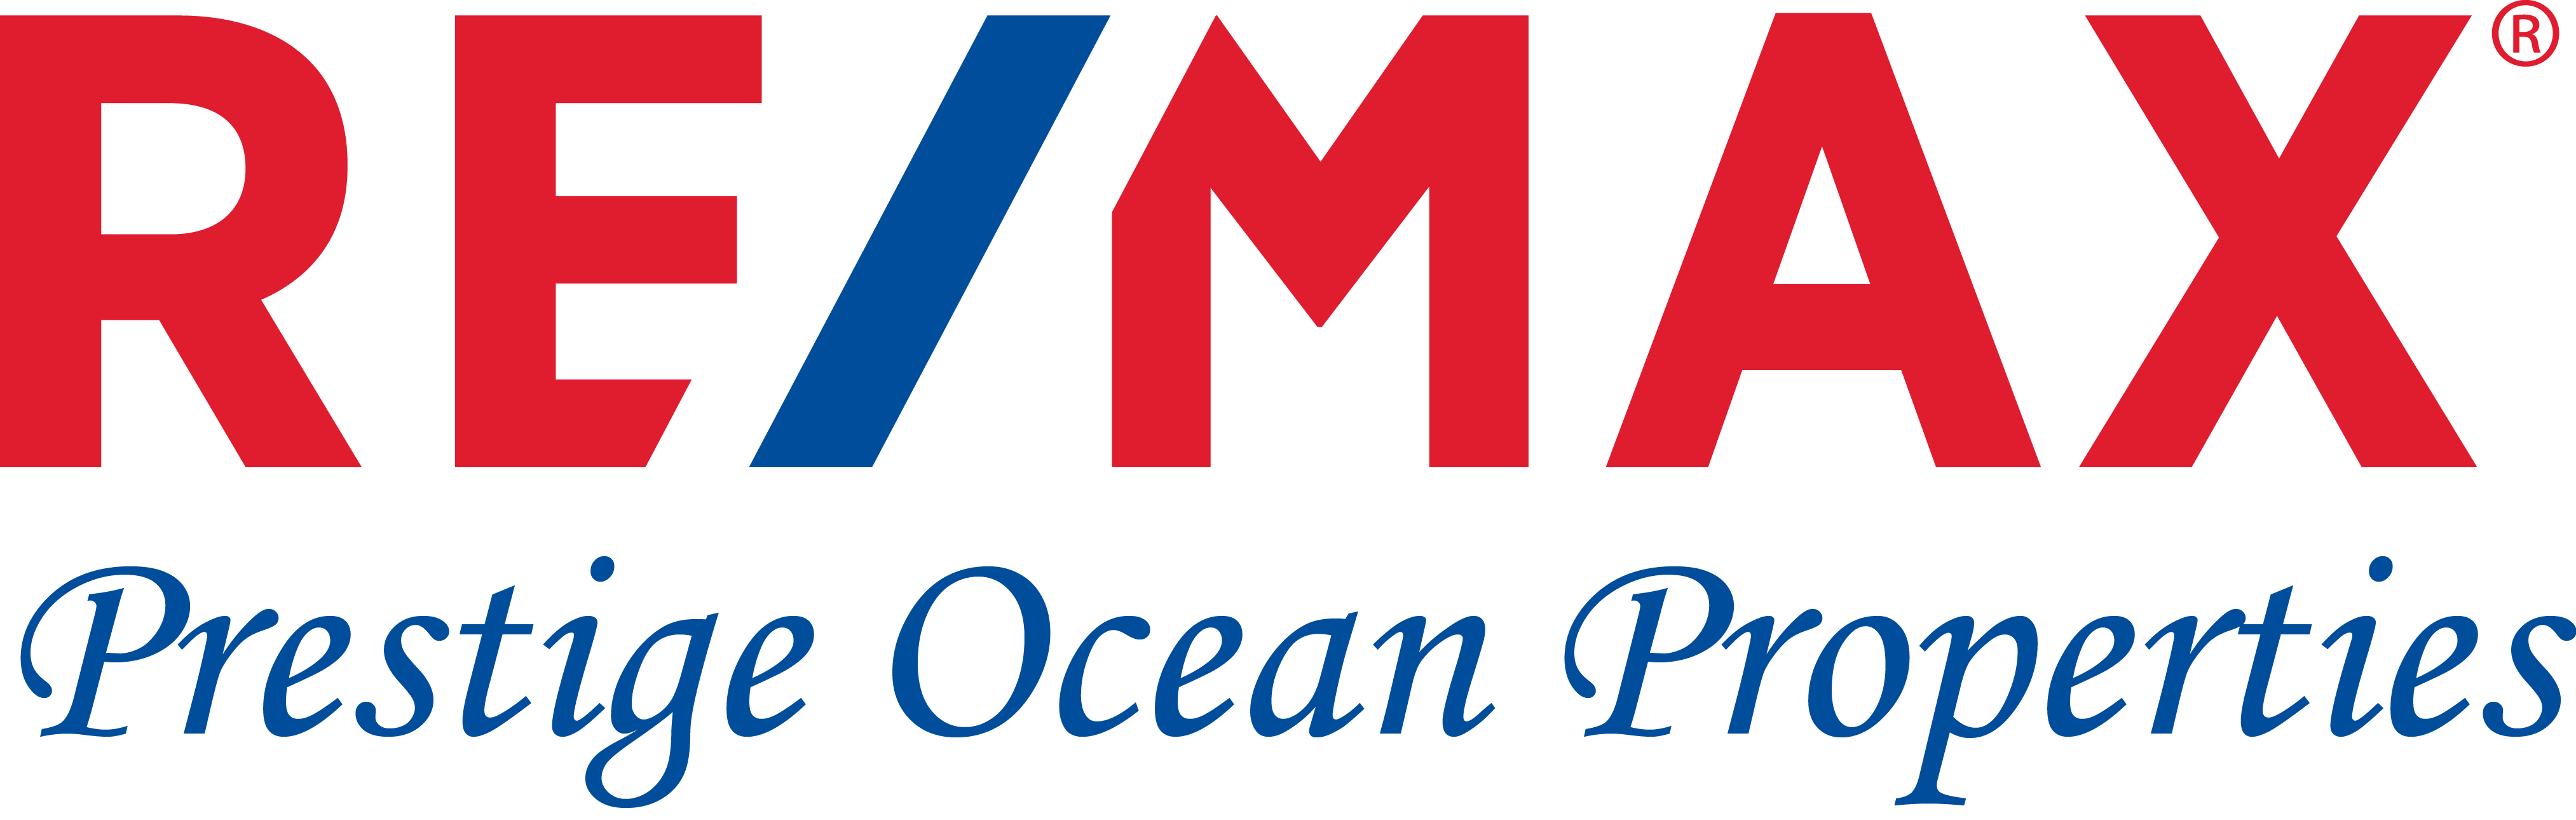 Remax Prestige in Playa Hermosa Costa Rica